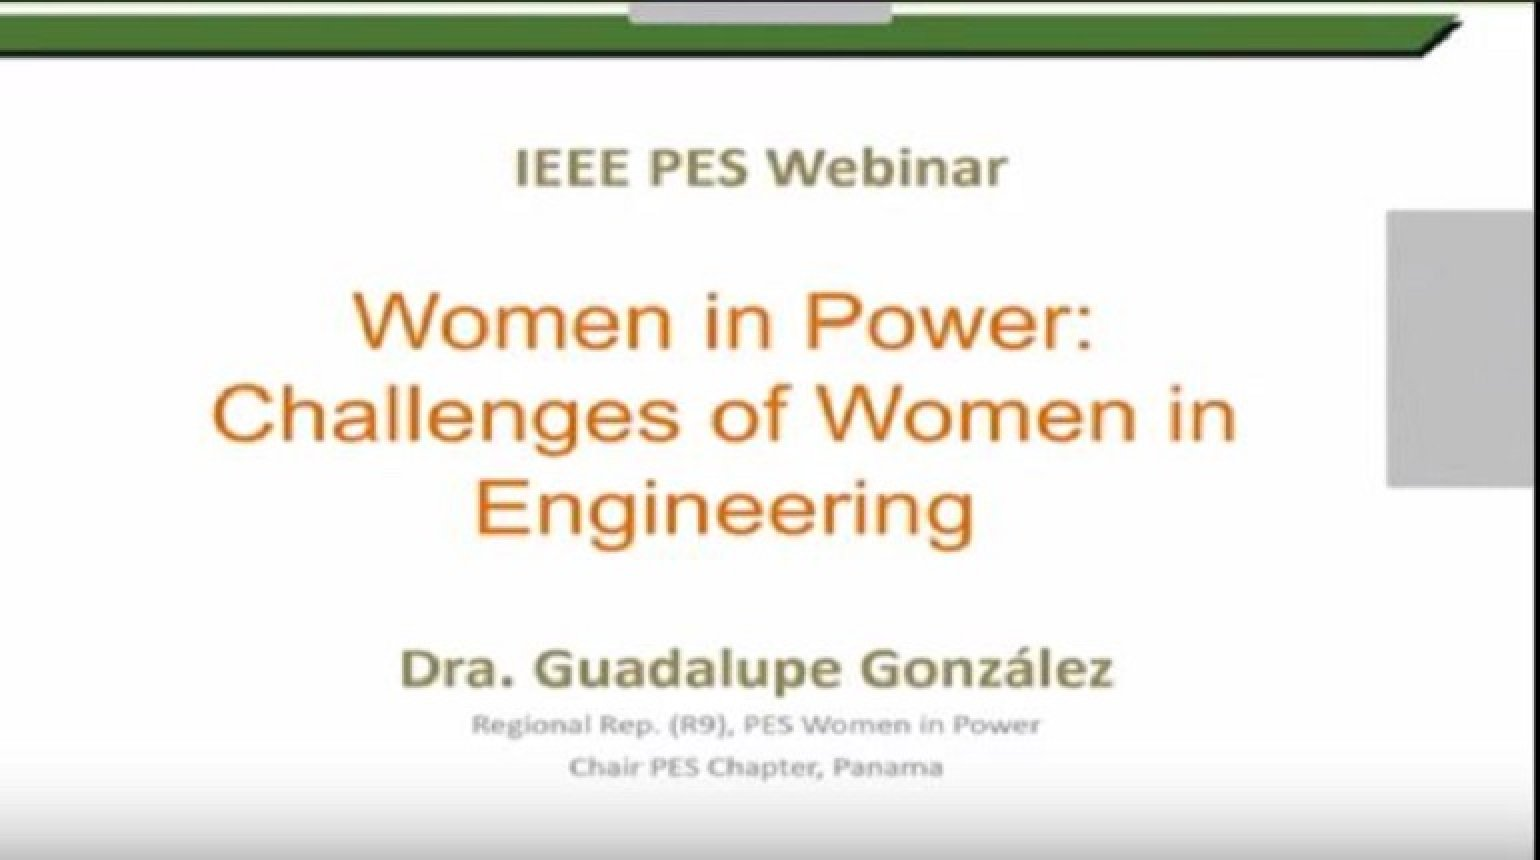 Challenges of Women in Engineering Face